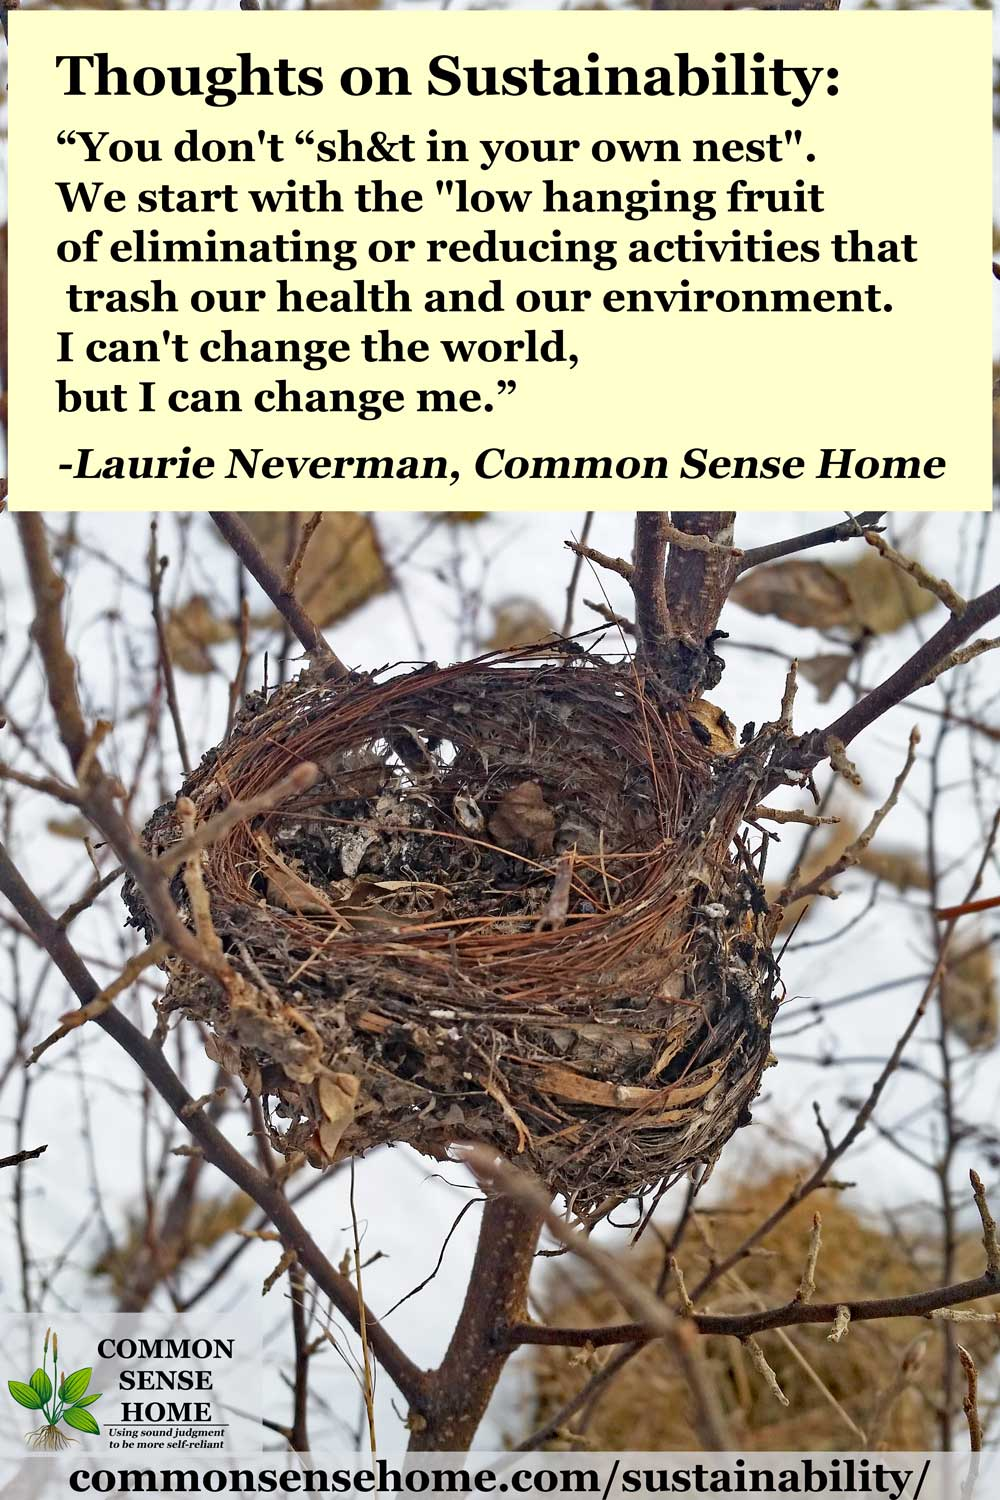 bird nest with sustainability text